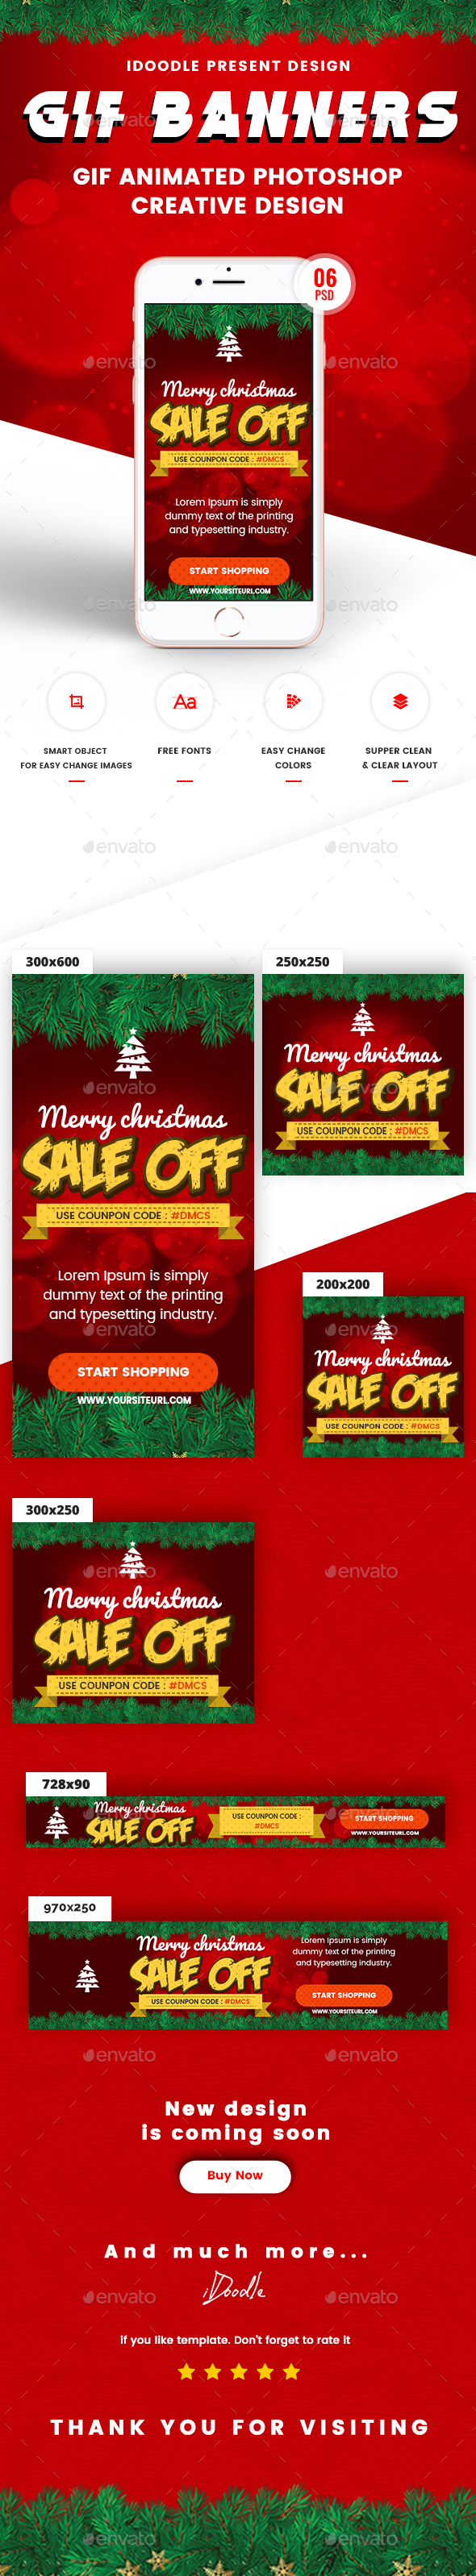 Animated GIF Merry Christmas Banners Ad - Banners & Ads Web Elements